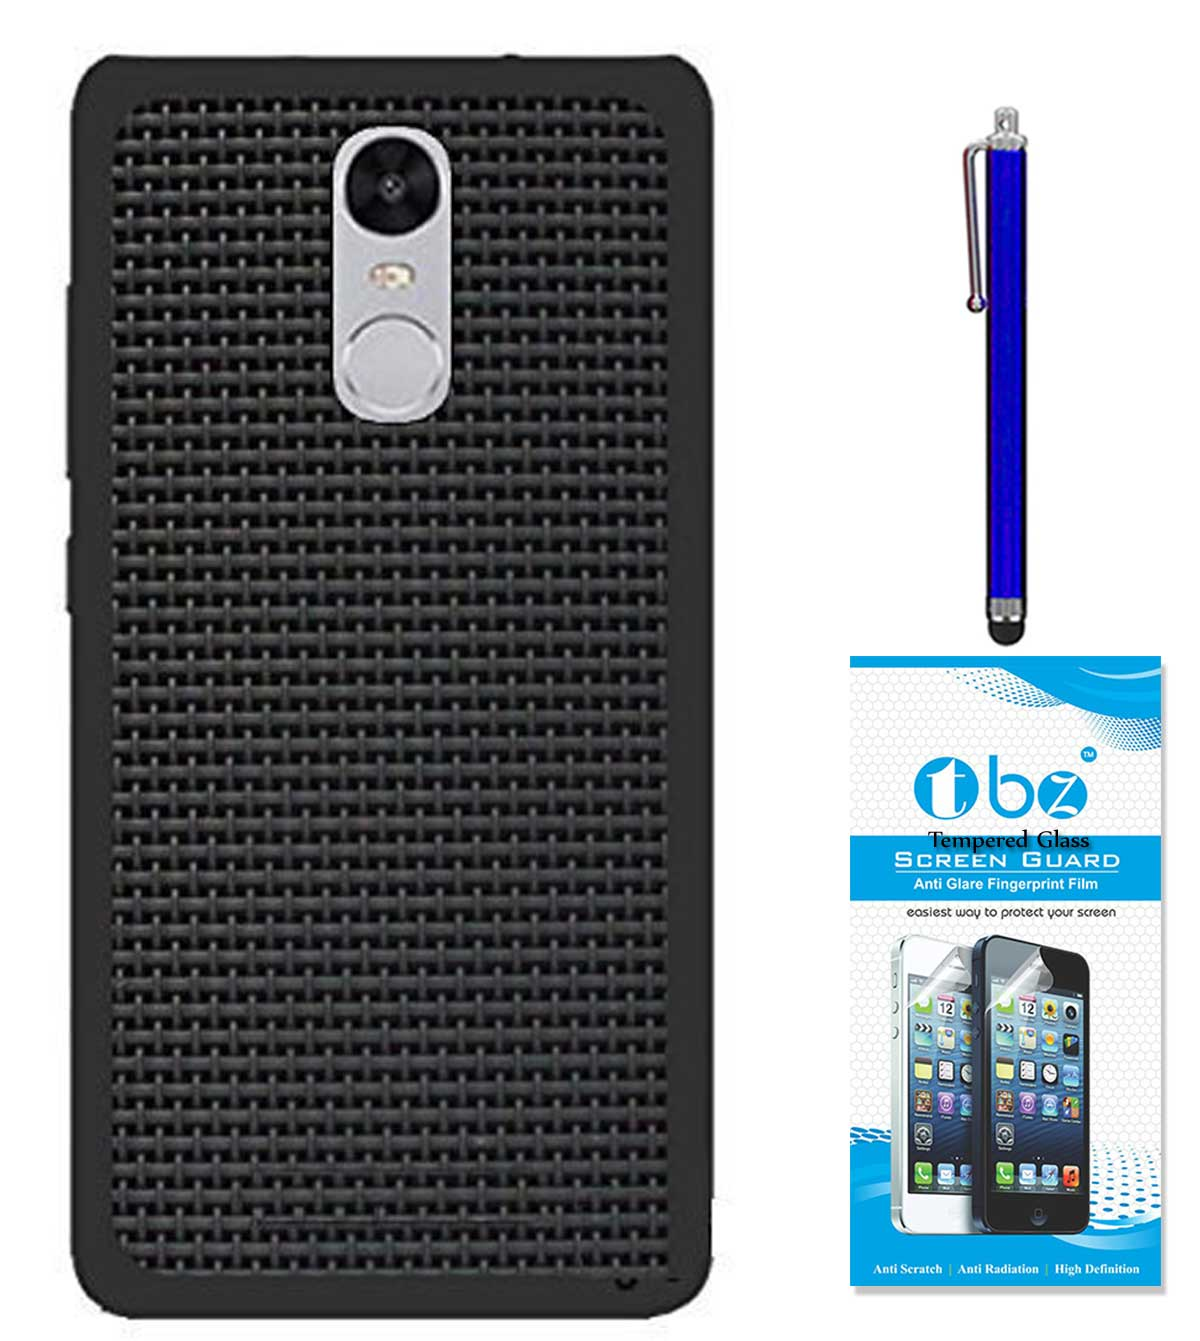 TBZ Rubberised Black Net/Jali Back Cover Case for Motorola Moto G5 Plus with Stylus Pen and Tempered Screen Guard